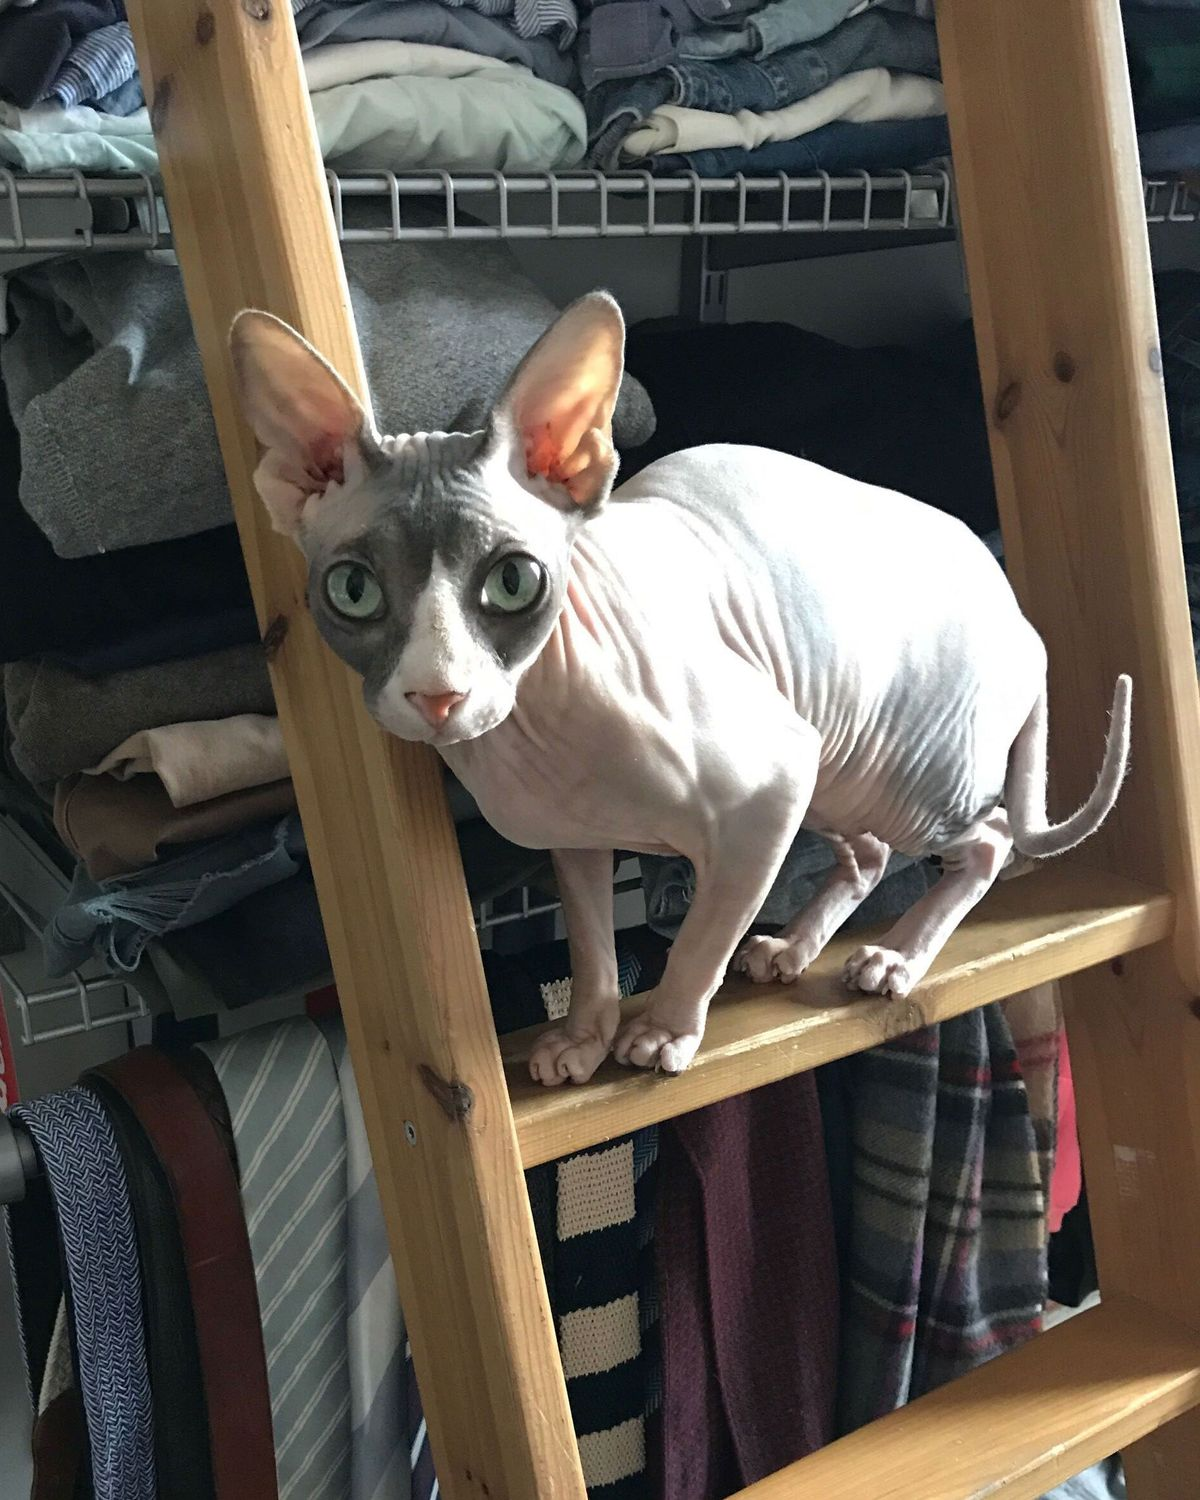 How To Care For A Hairless Cat Sphynx Care 2020 The Strategist New York Magazine